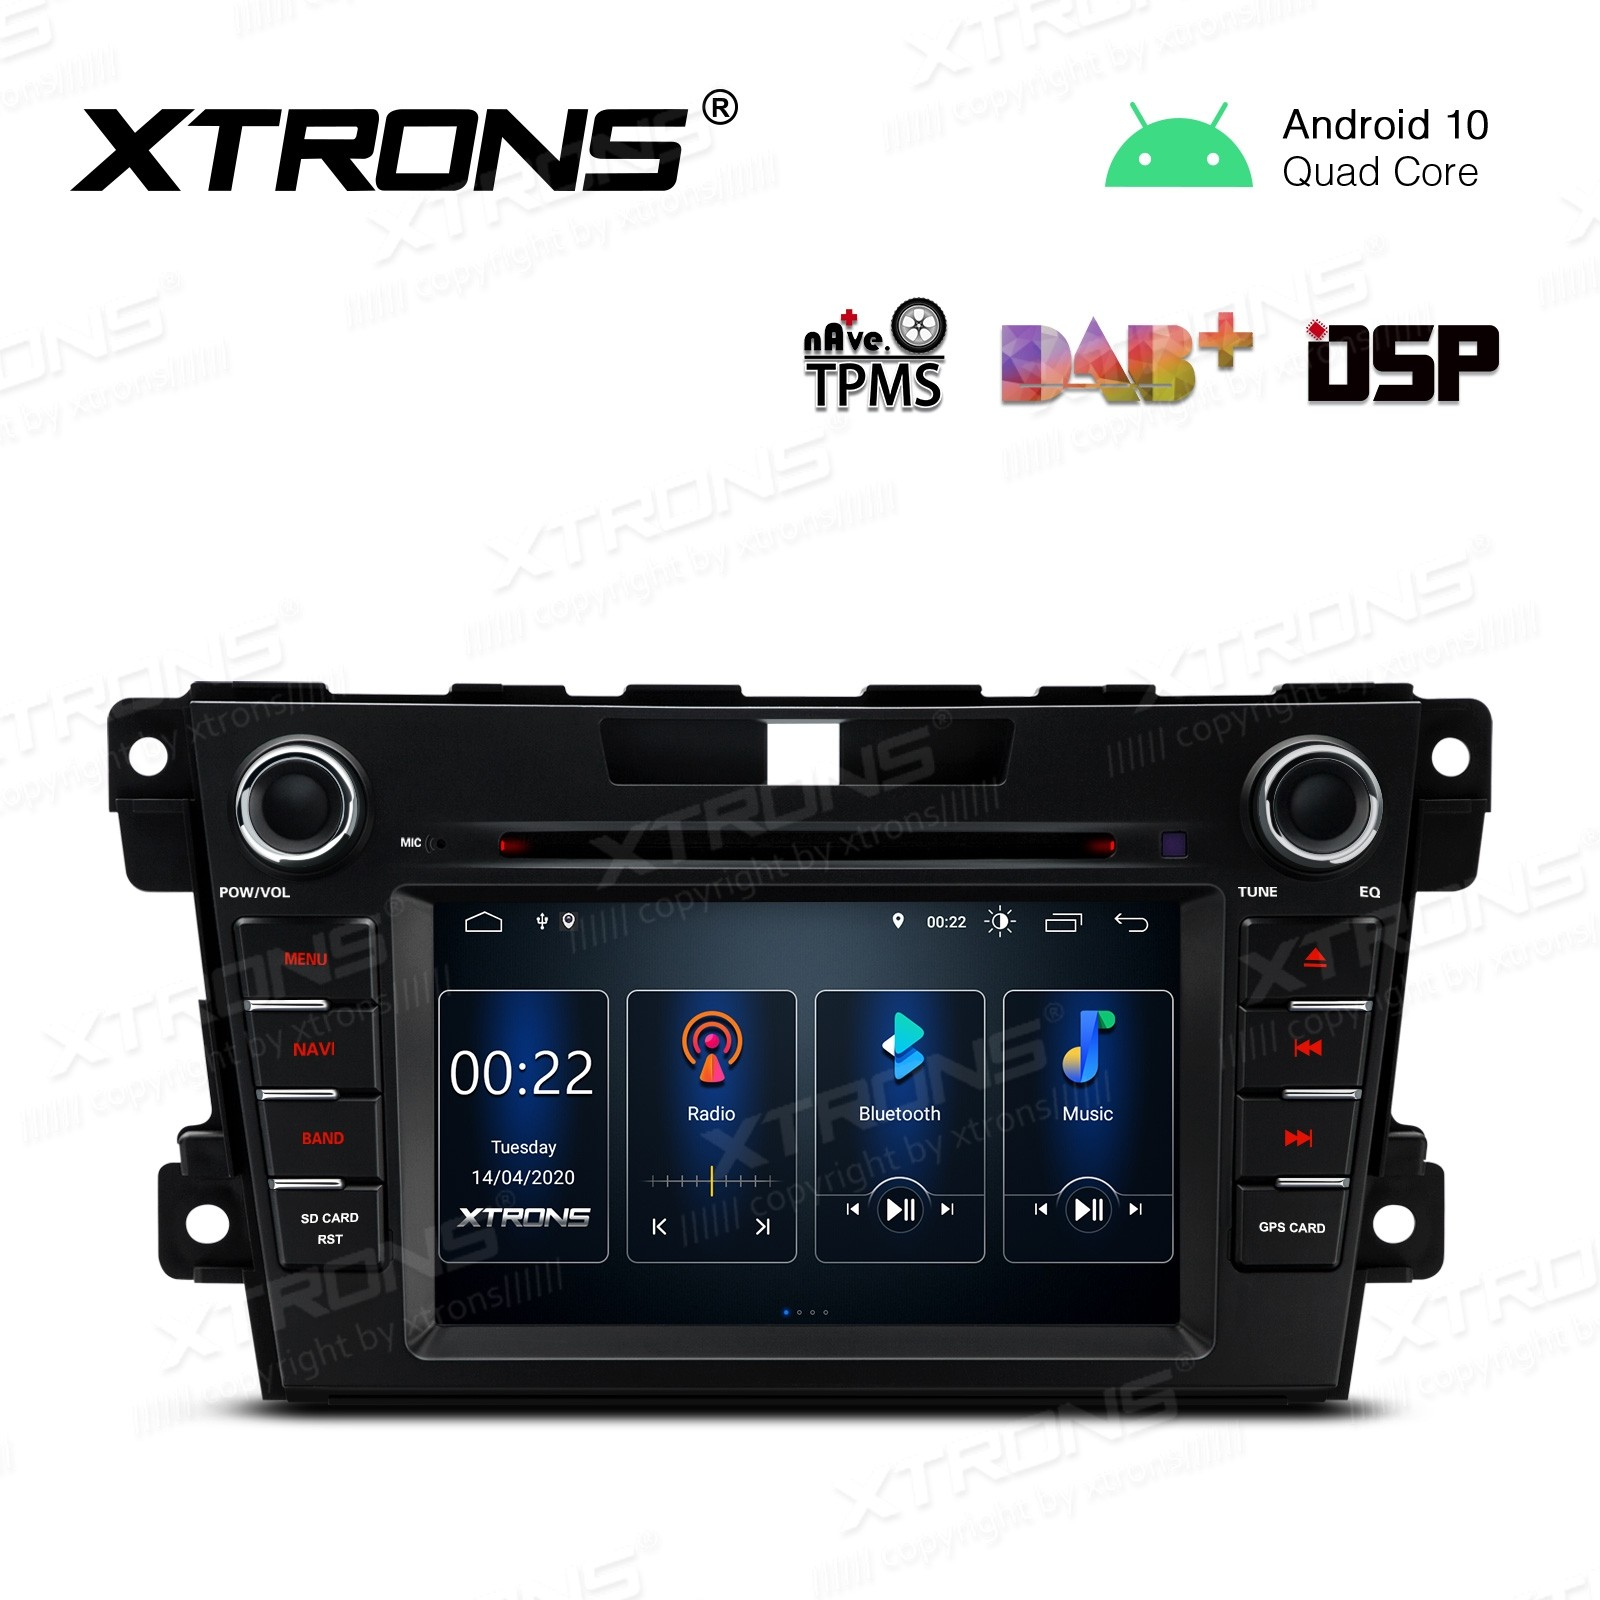 7 inch Android 10.0 Car Navigation Multimedia Player with Built-in DSP Custom Fit for Mazda